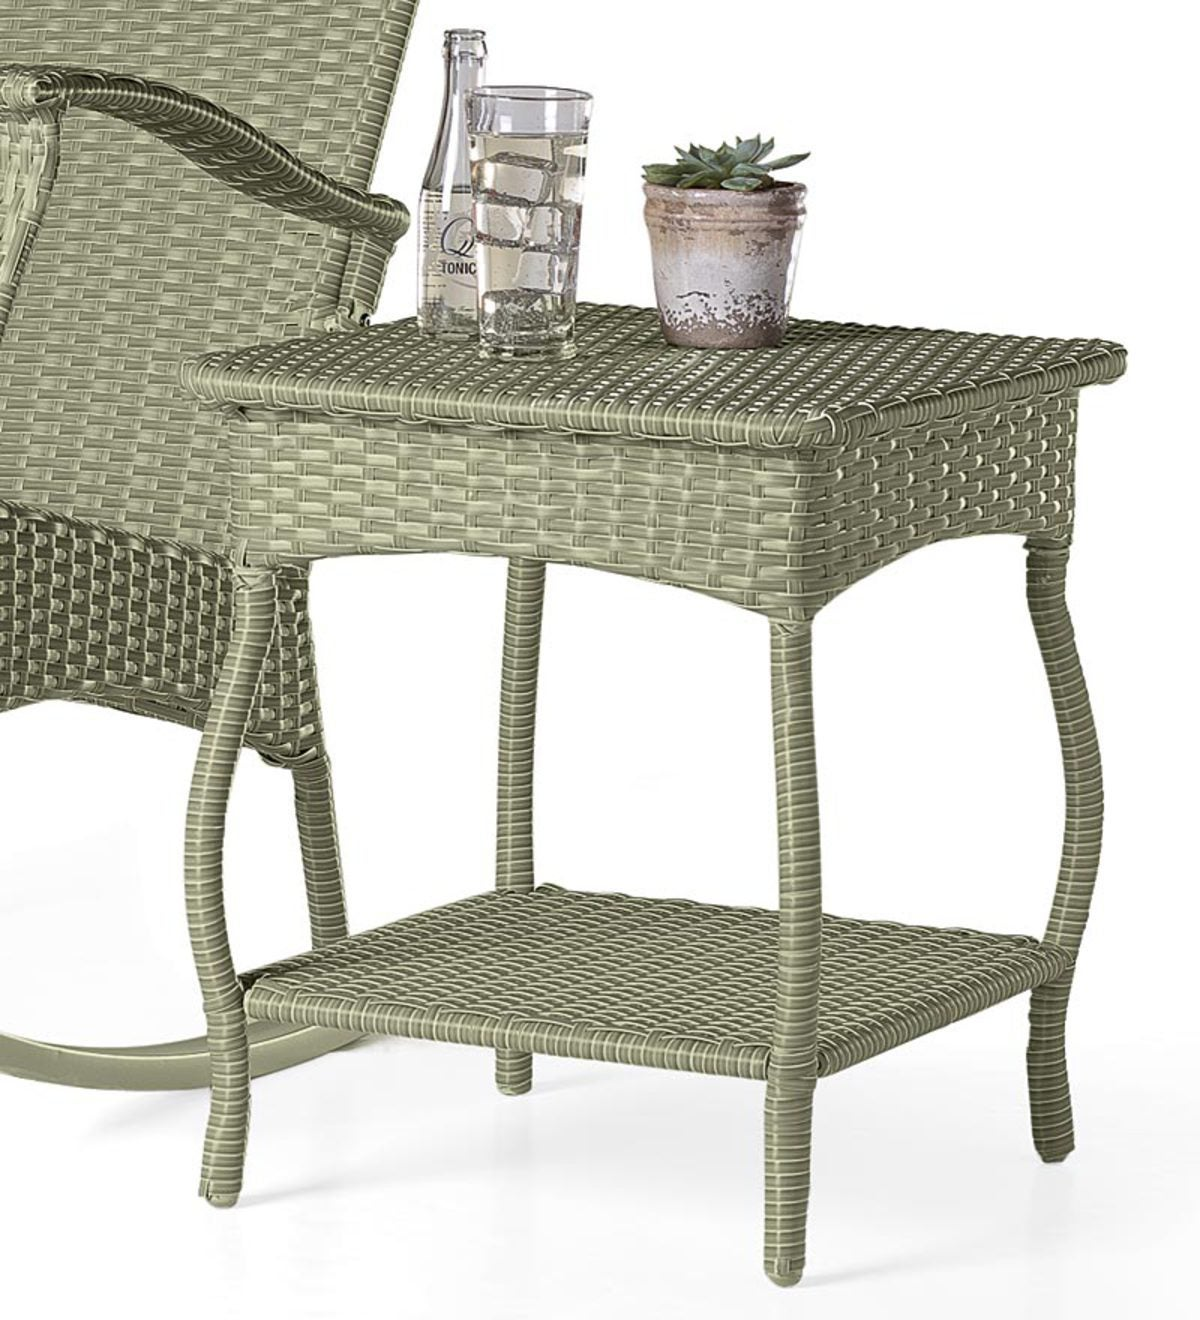 Outdoor Or Indoor Wicker Side Table With Steel Frame Antique White